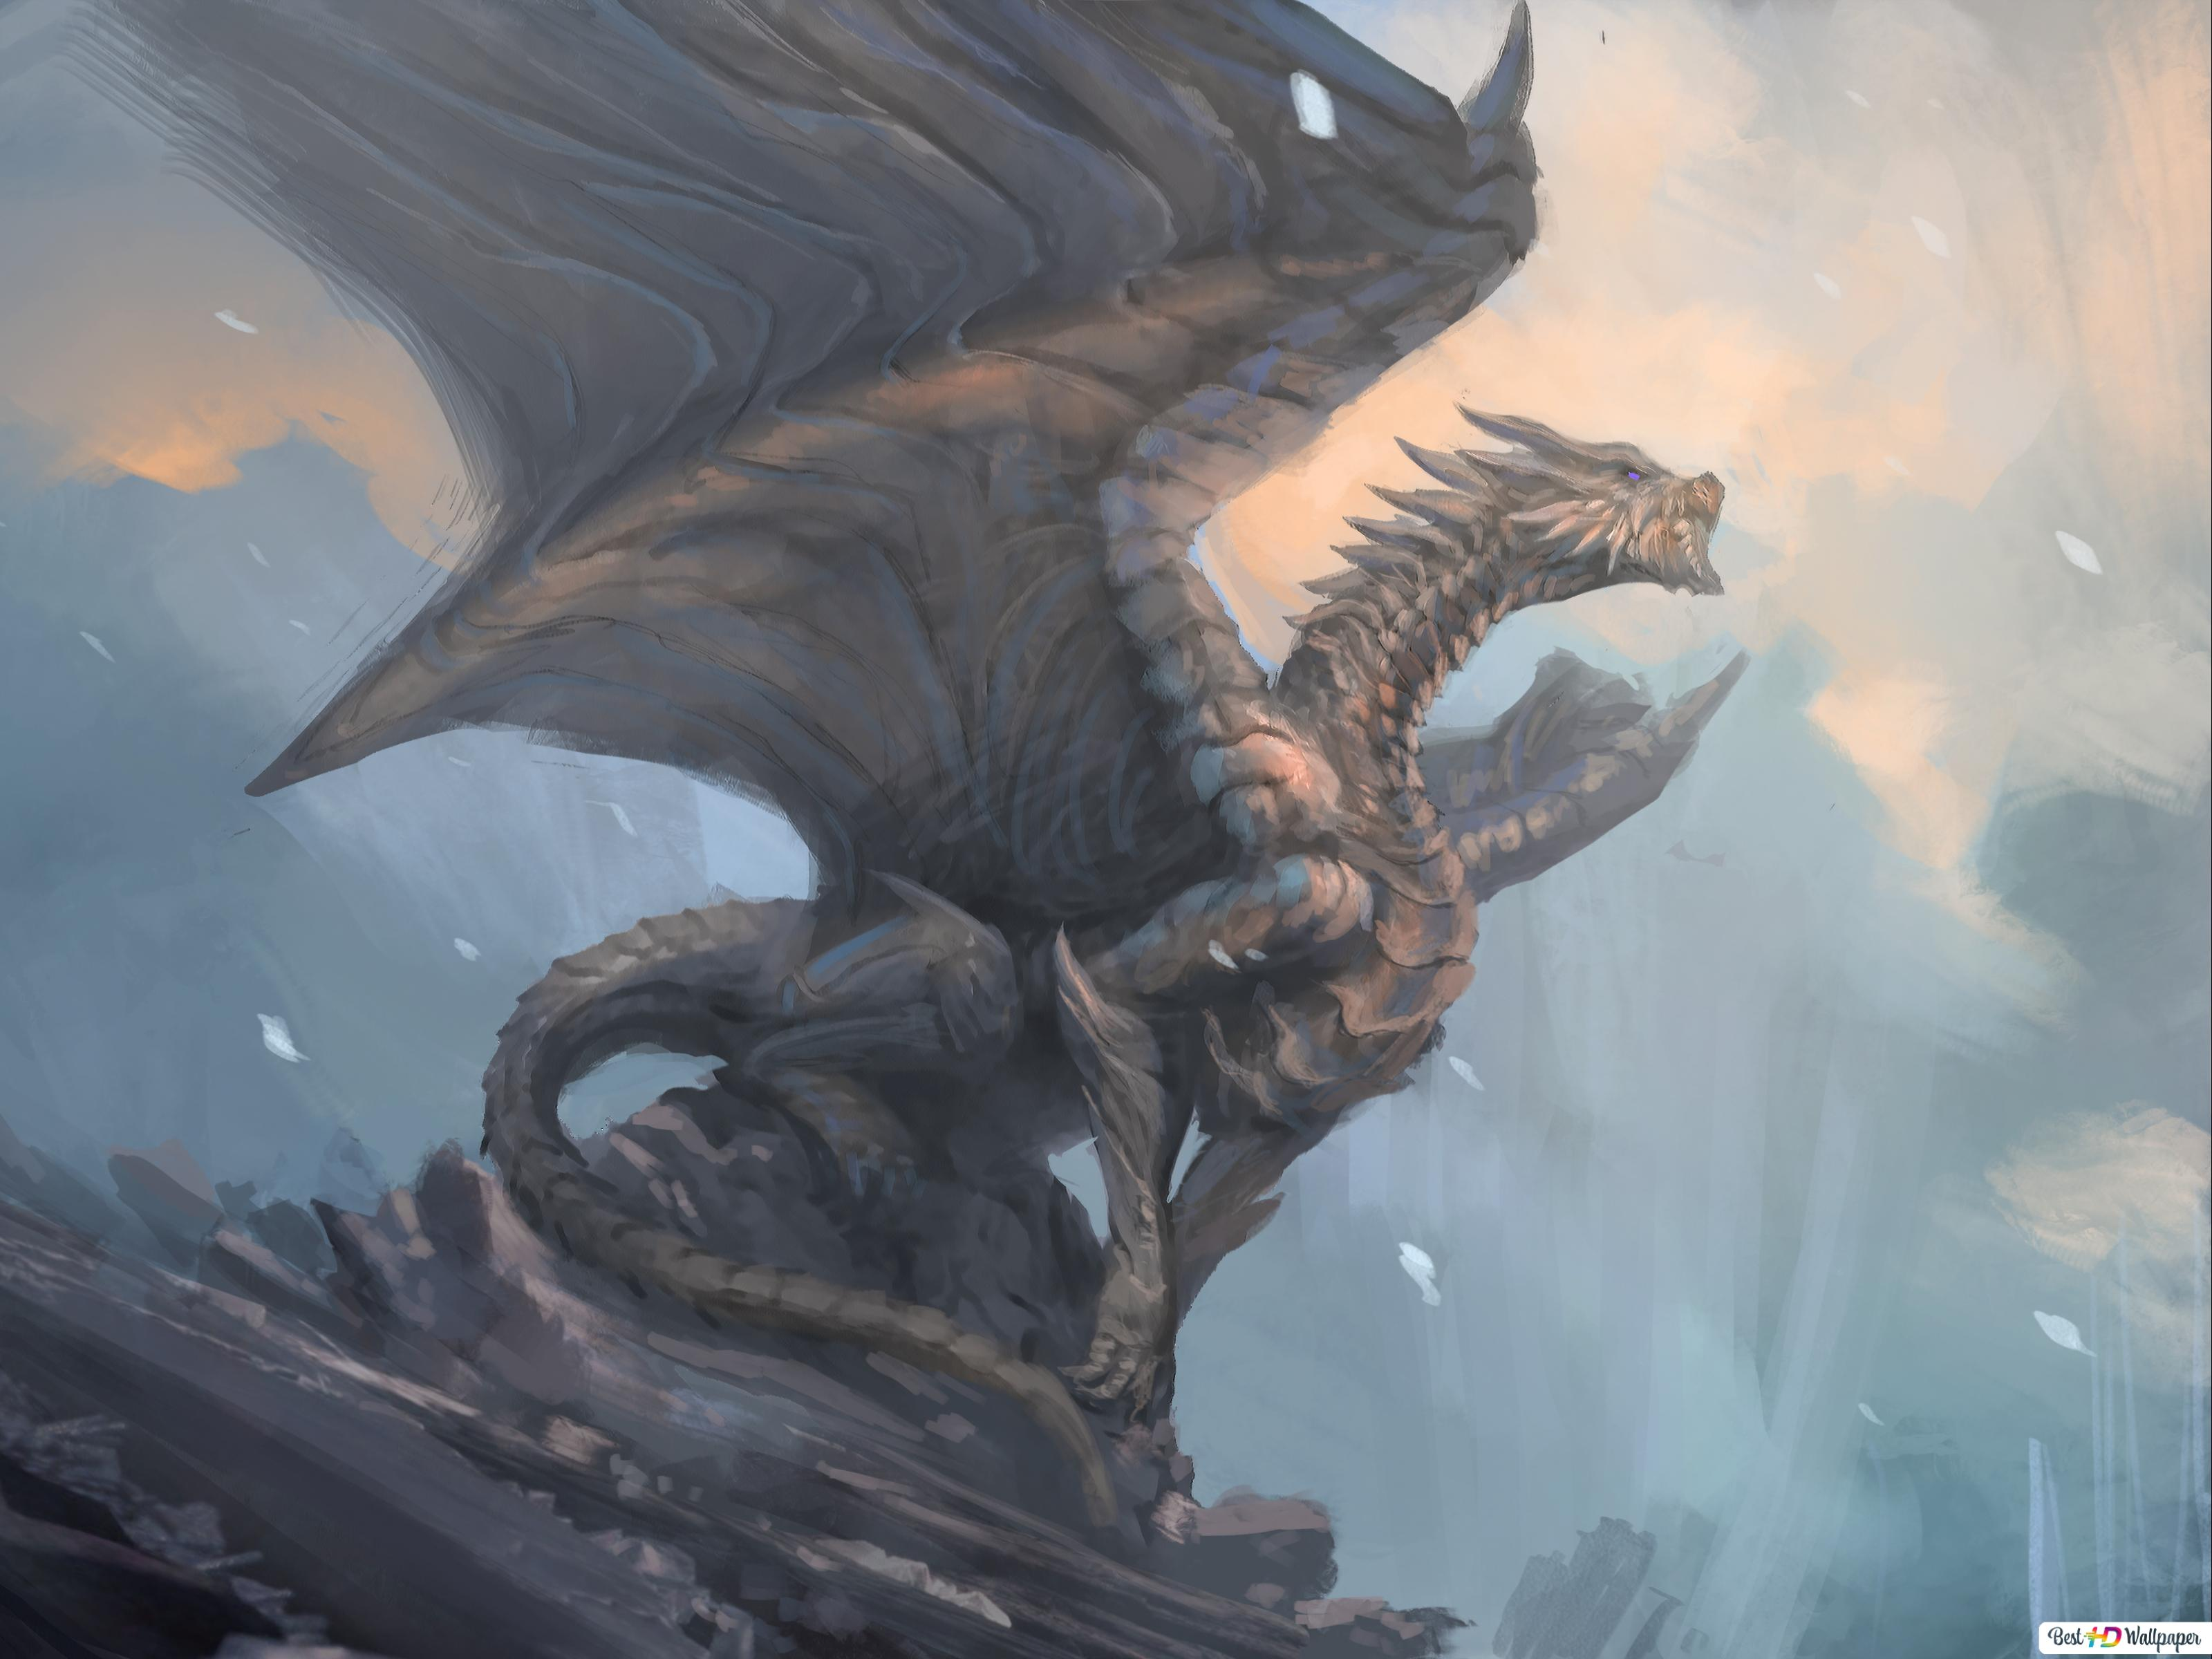 dragon mythical creature wallpaper 3200x2400 15100 29